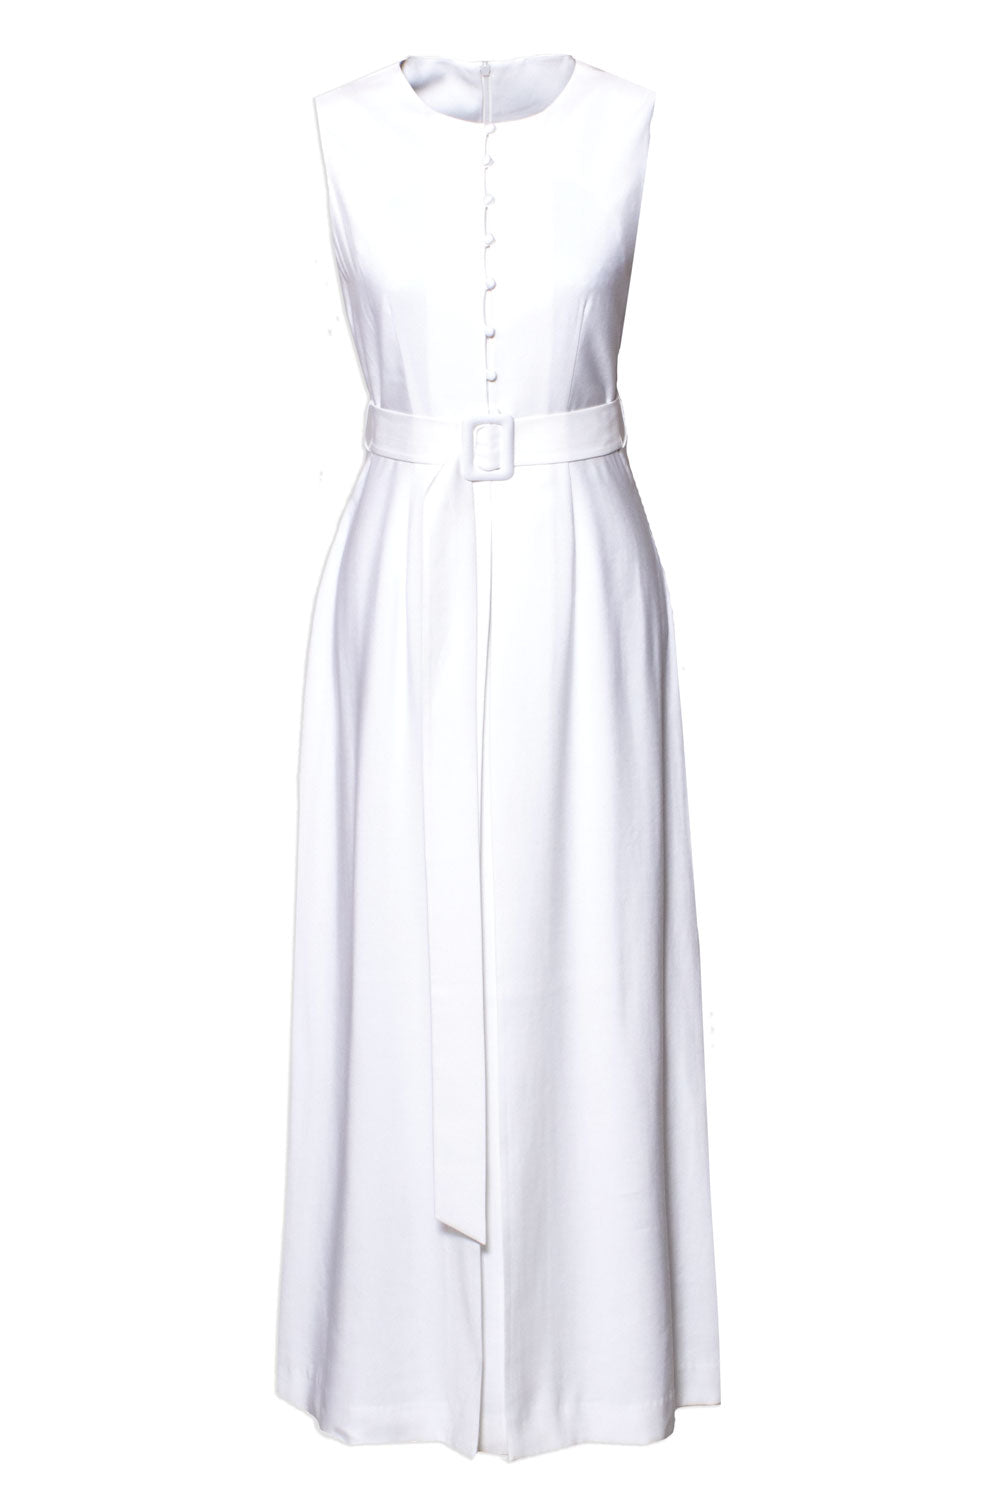 Rouleau Plissé Maxi Dress - White